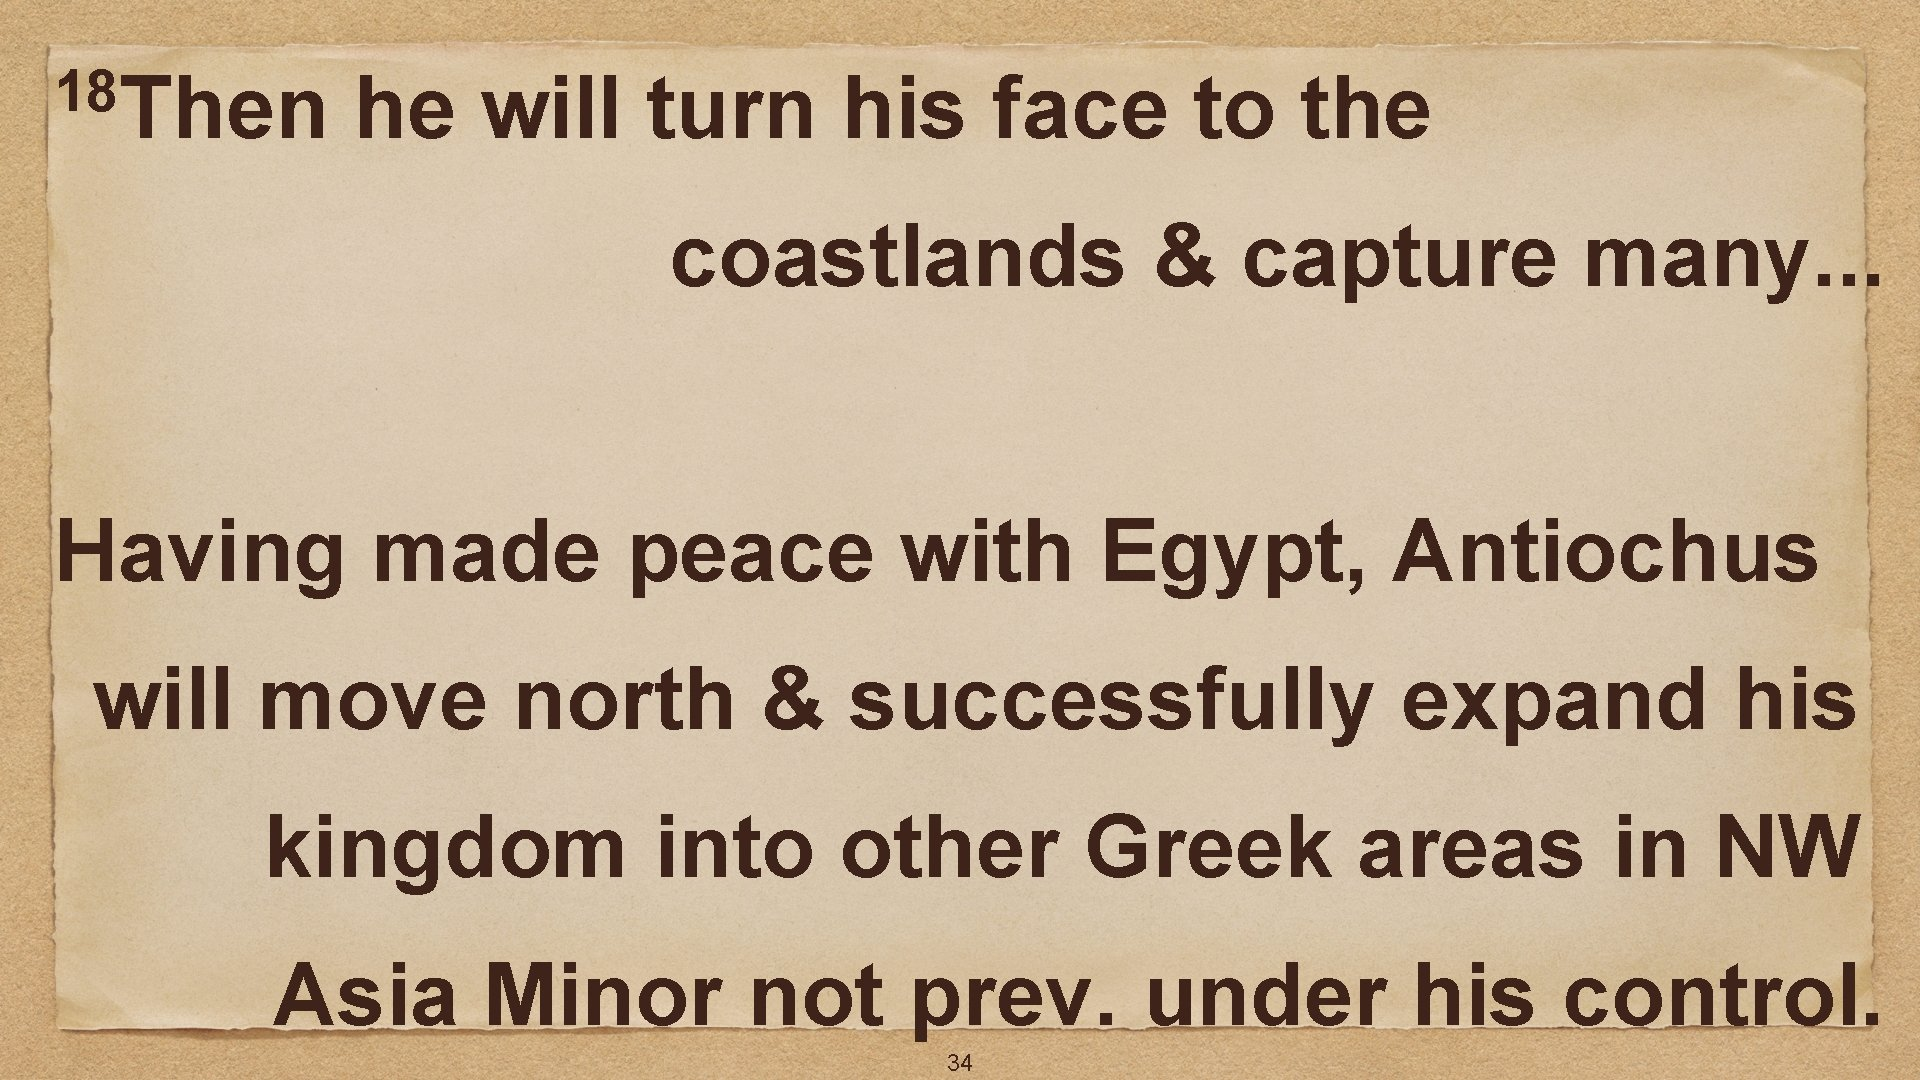 18 Then he will turn his face to the coastlands & capture many. .